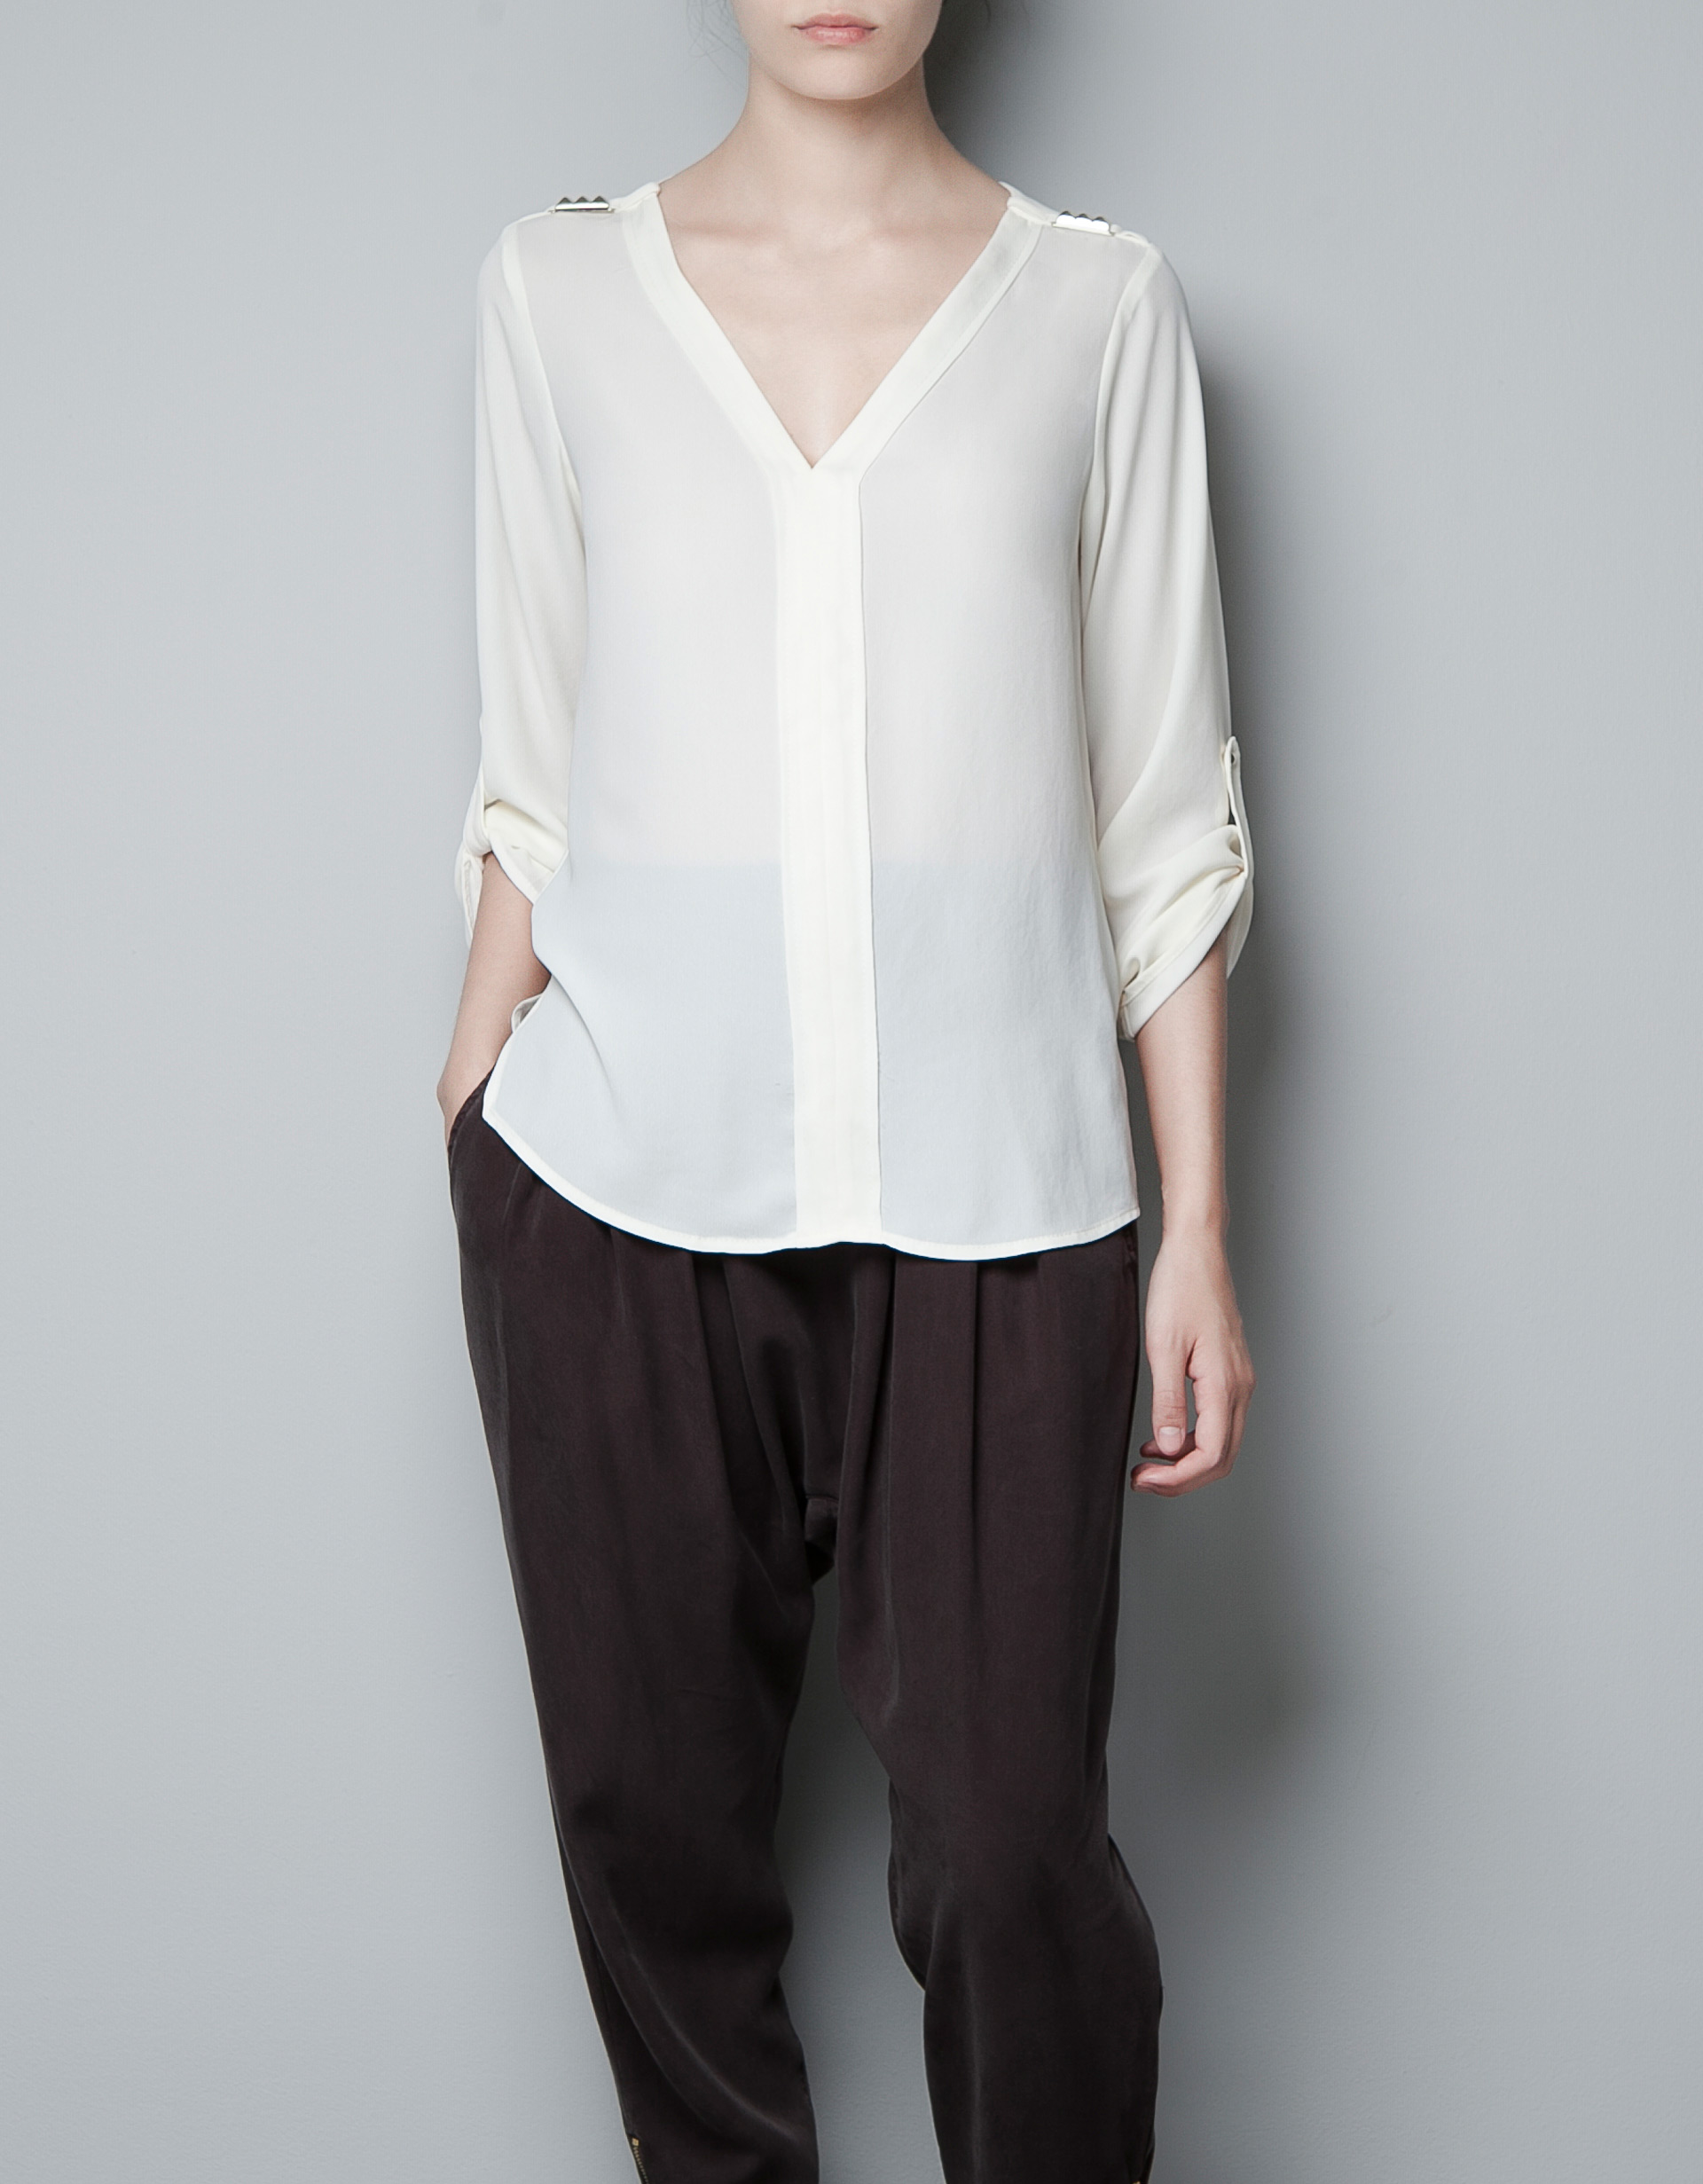 Zara White Blouse 95